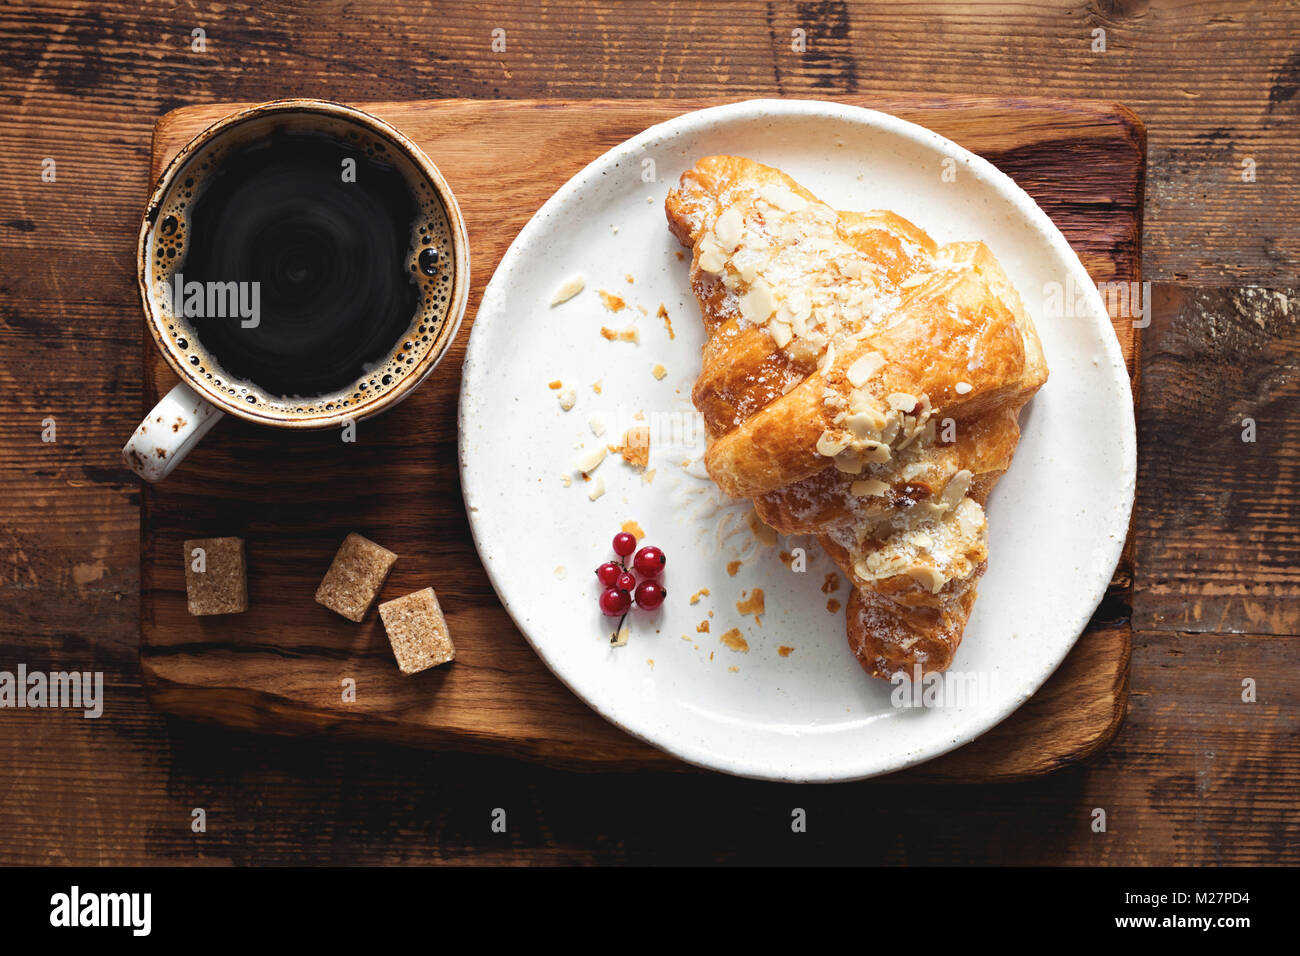 Croissant and cup of coffee espresso on old wooden table. Top view. Breakfast concept - Stock Image